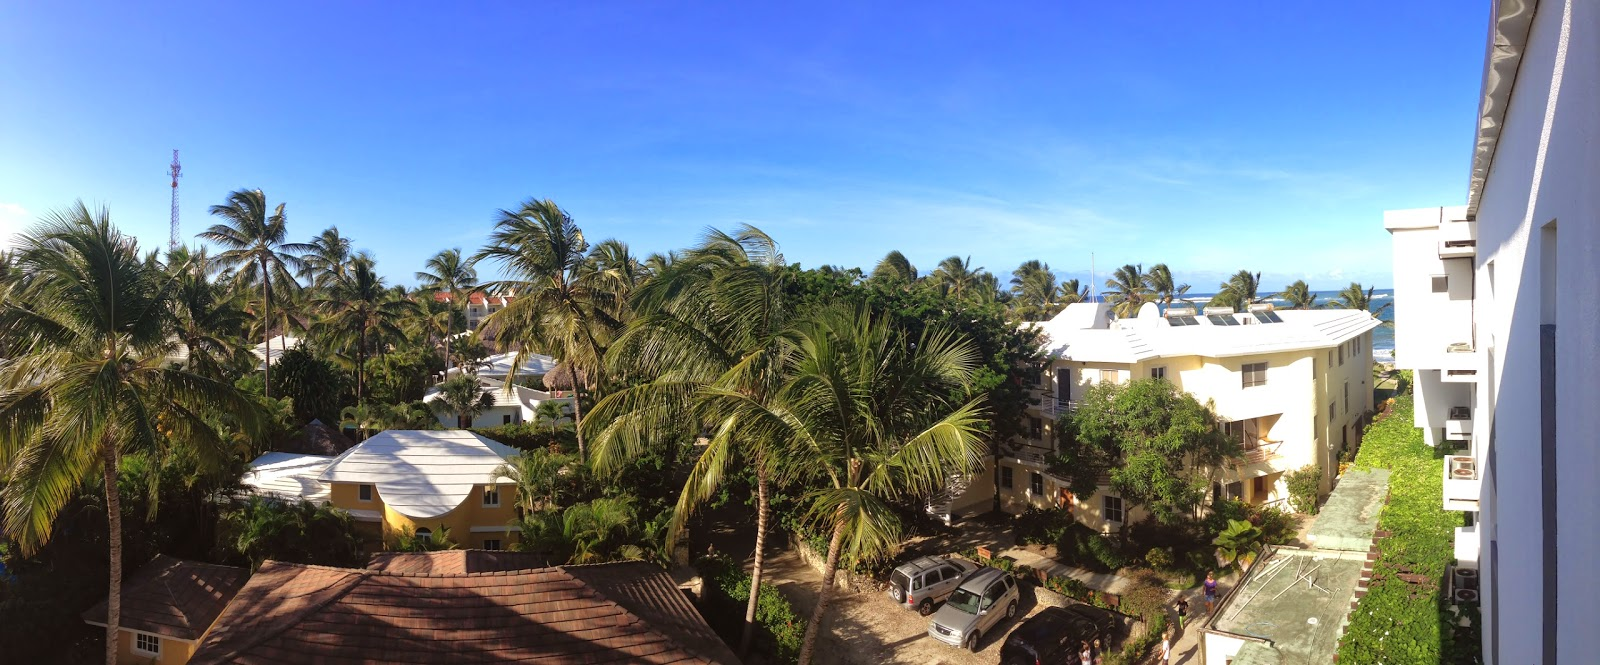 The View from my room at Millennium Resort & Spa in Cabarete, Dominican Republic